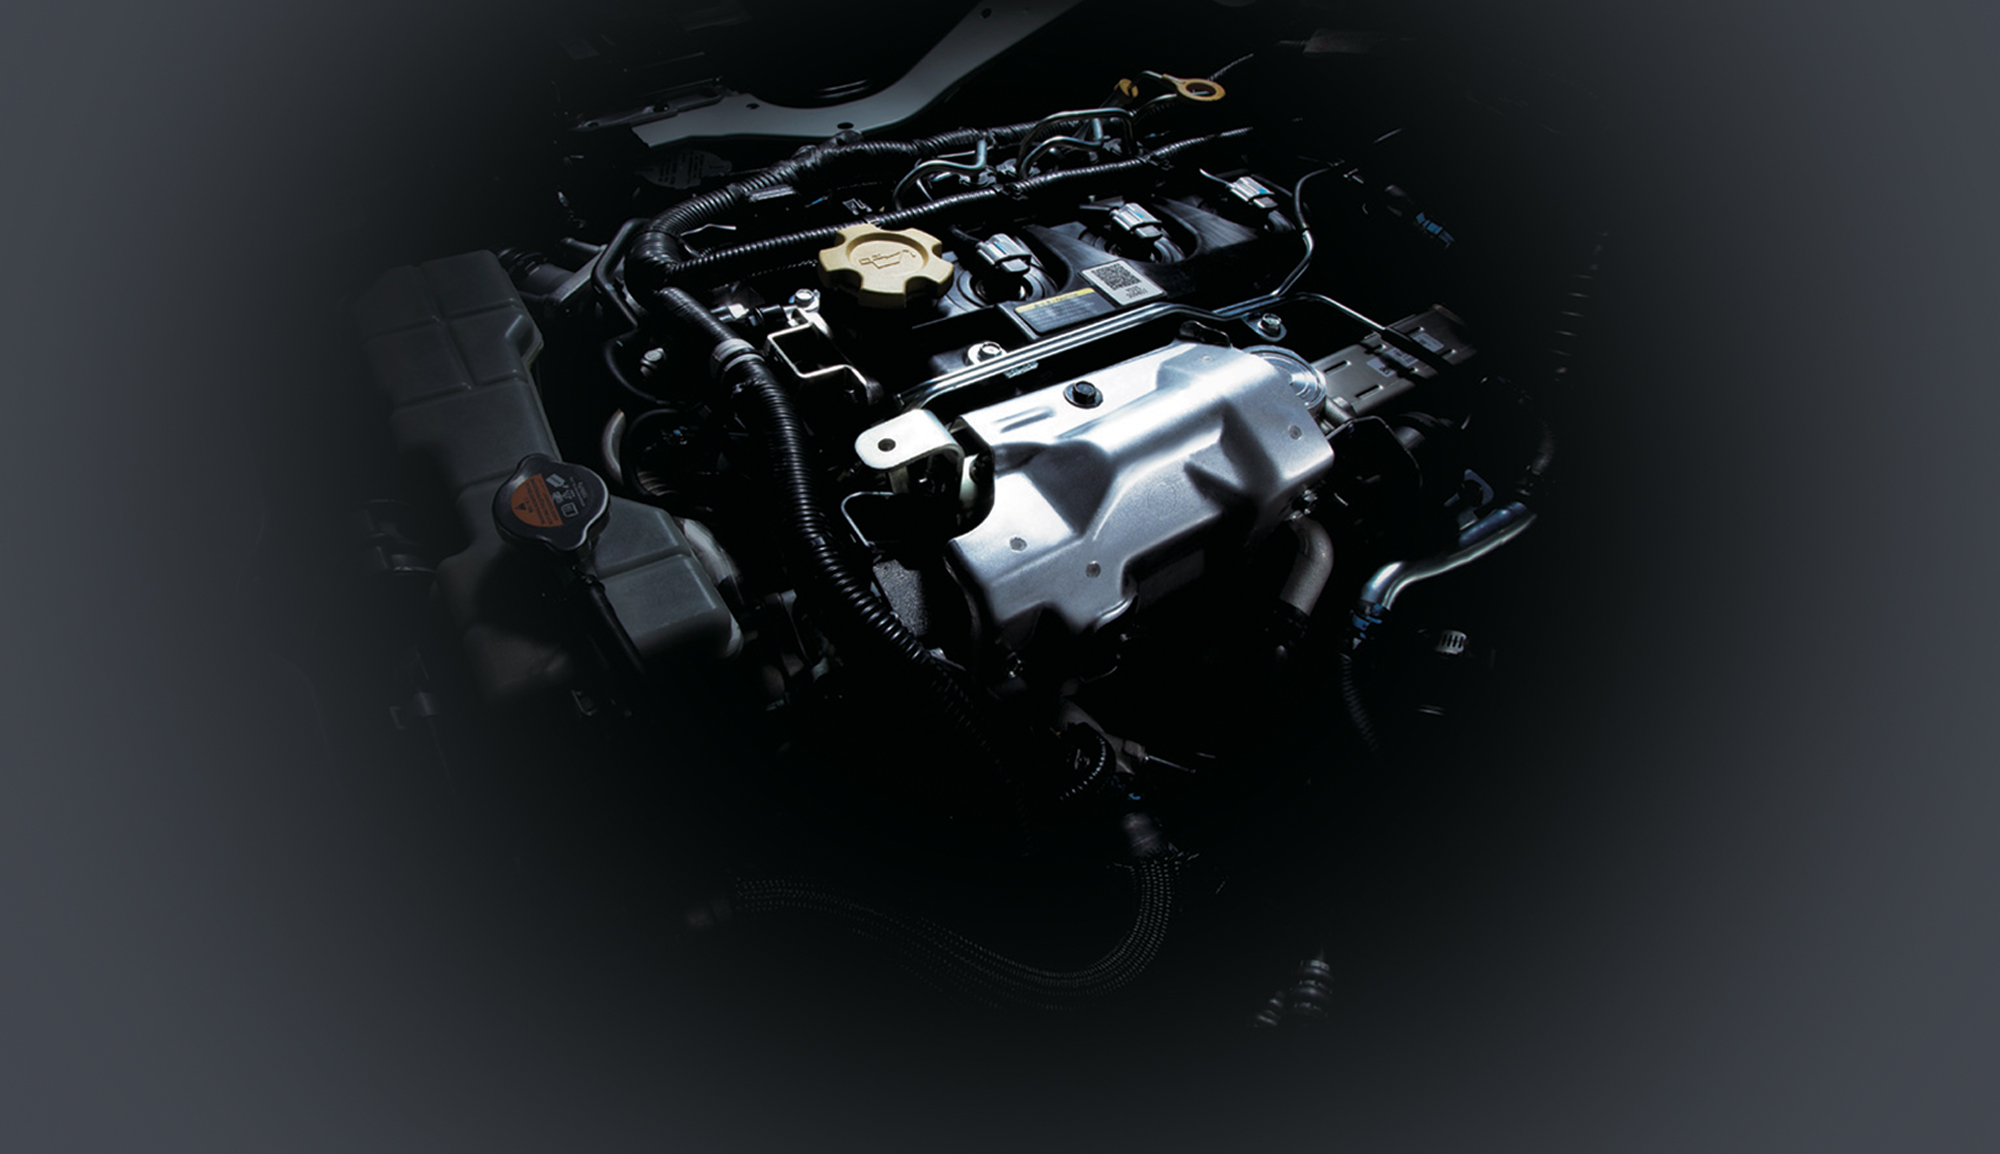 02_NV350 Urvan_2.5L Diesel Direct Injection with Variable Geometry System (VGS) Turbo Intercooler